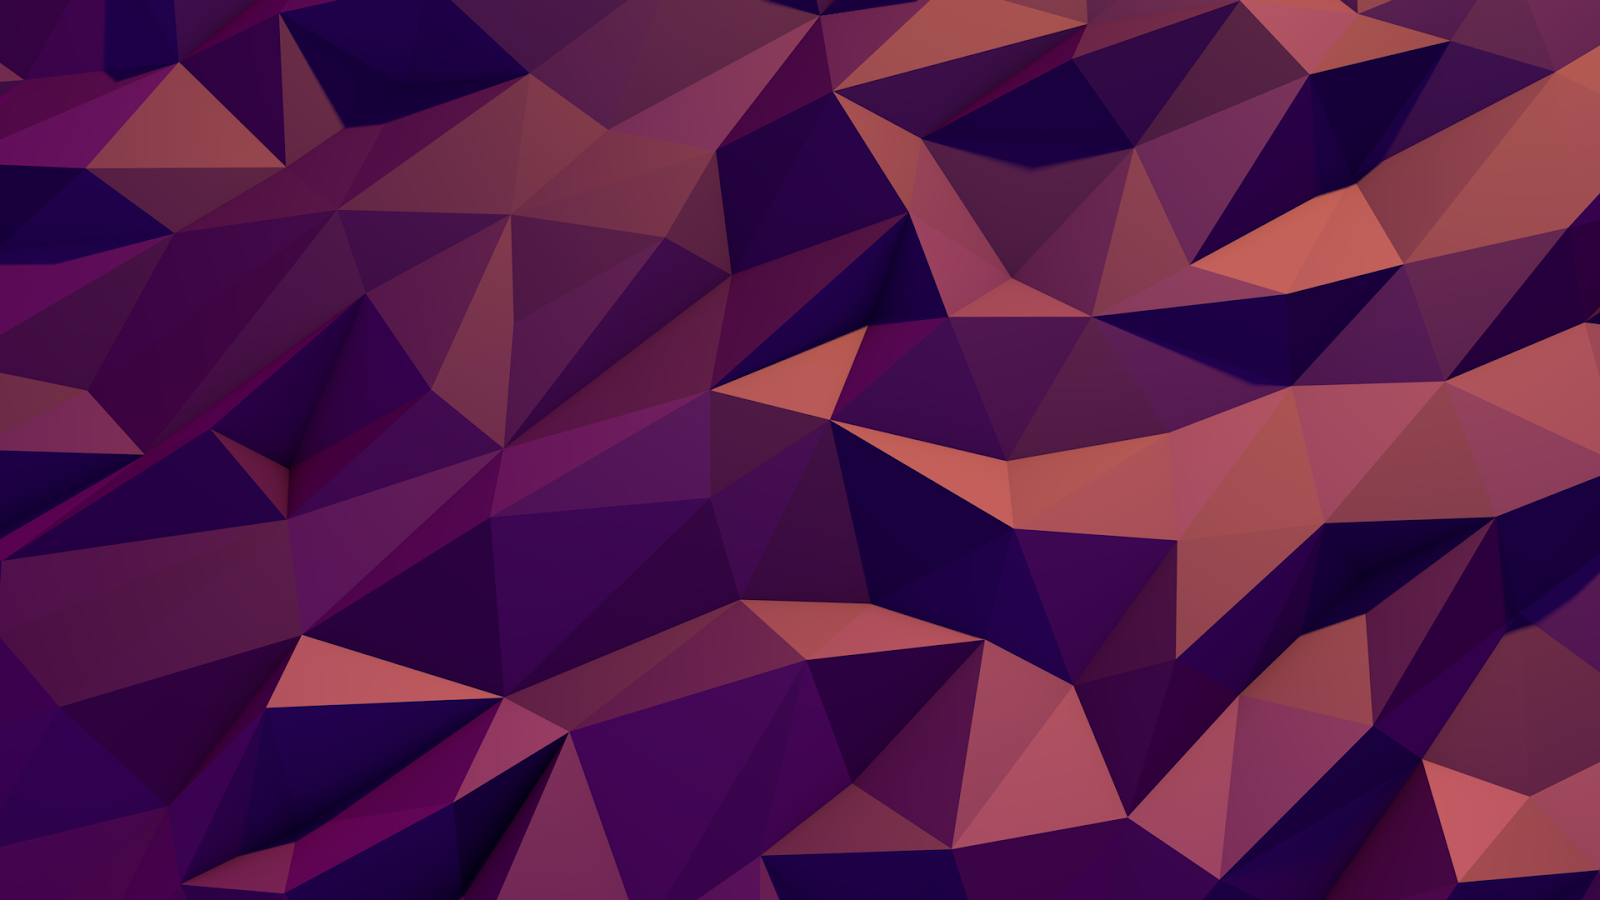 Low Poly Wallpapers Art Wallpaper Project Abstract Low Poly Art